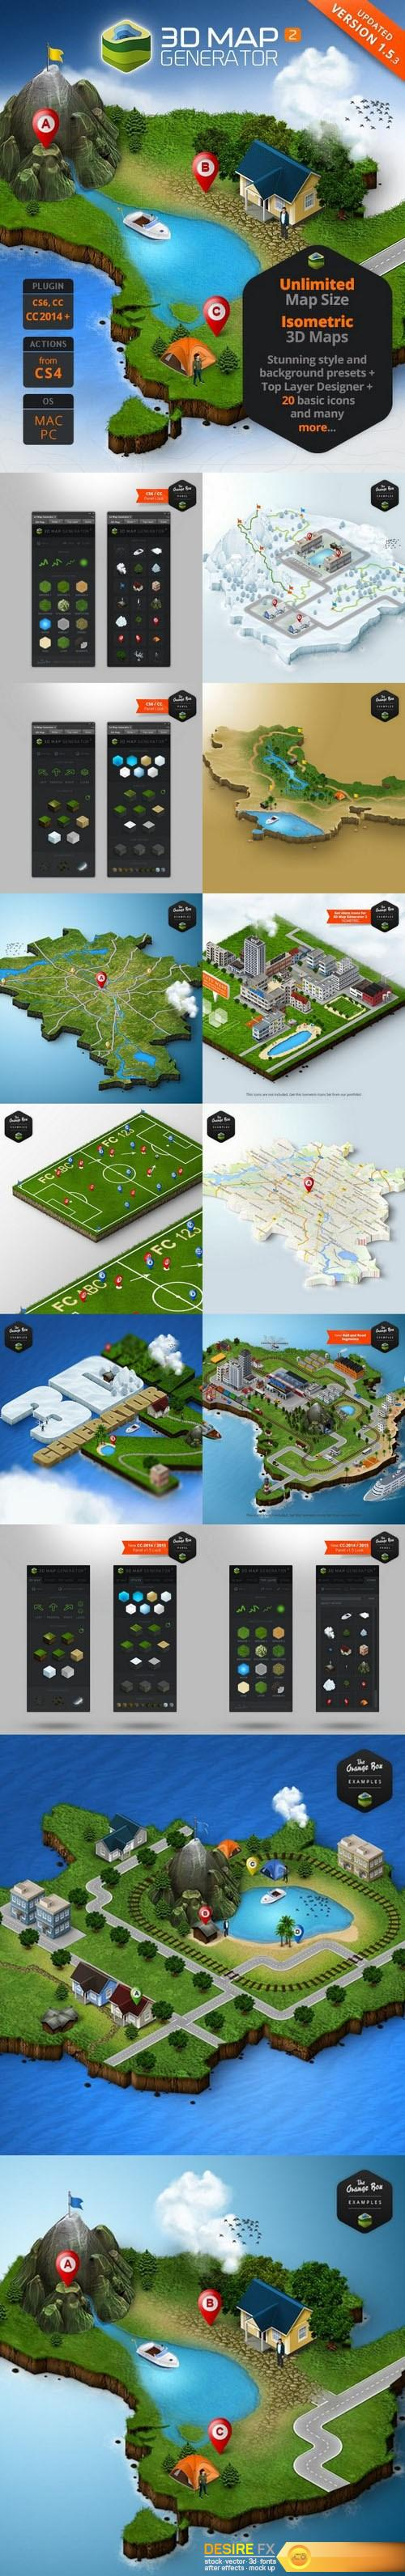 Graphicriver 3d map generator 2 isometric 7667950 httpwww graphicriver 3d map generator 2 isometric 7667950 httpdesirefx gumiabroncs Gallery